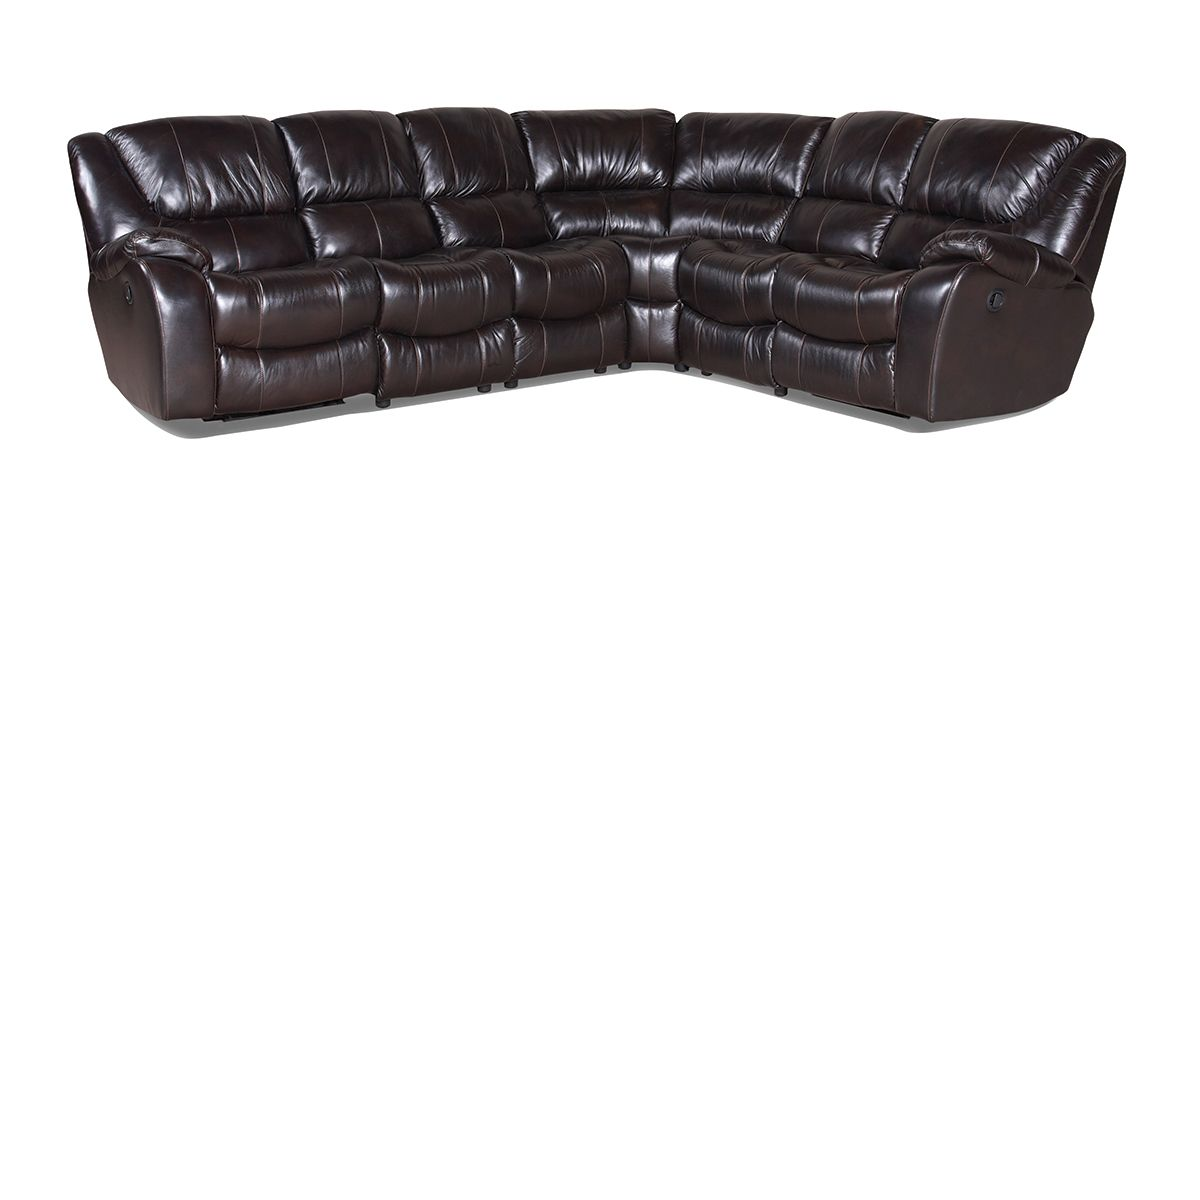 Sectional Sofas The Dump: Tannery Closeout: Leather Sectional